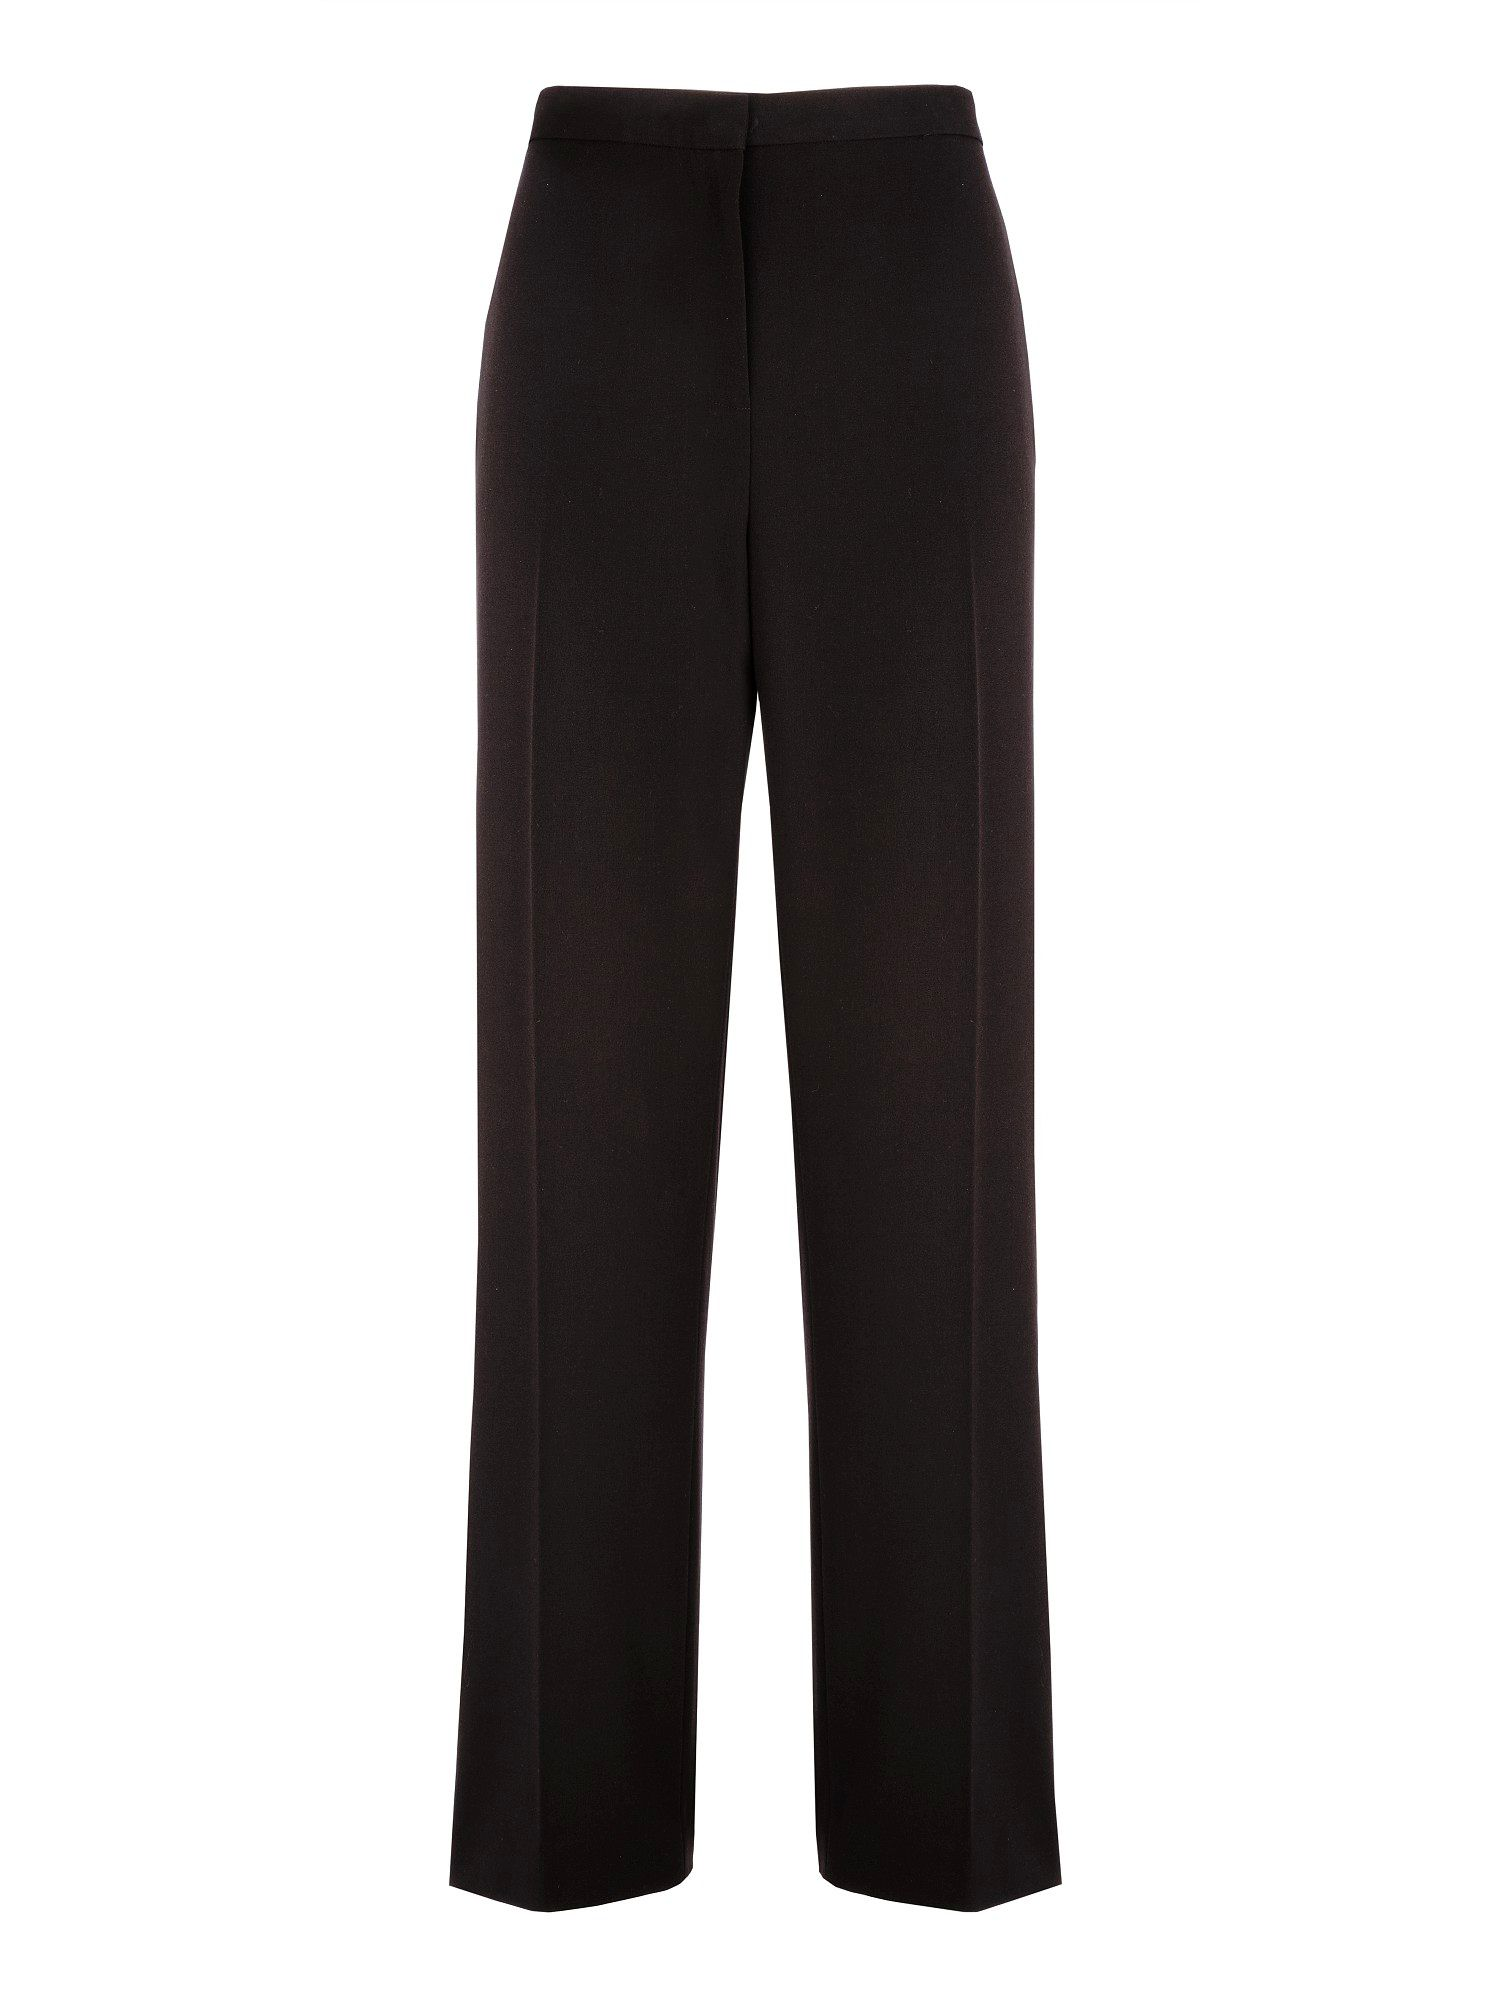 Black tailored trouser